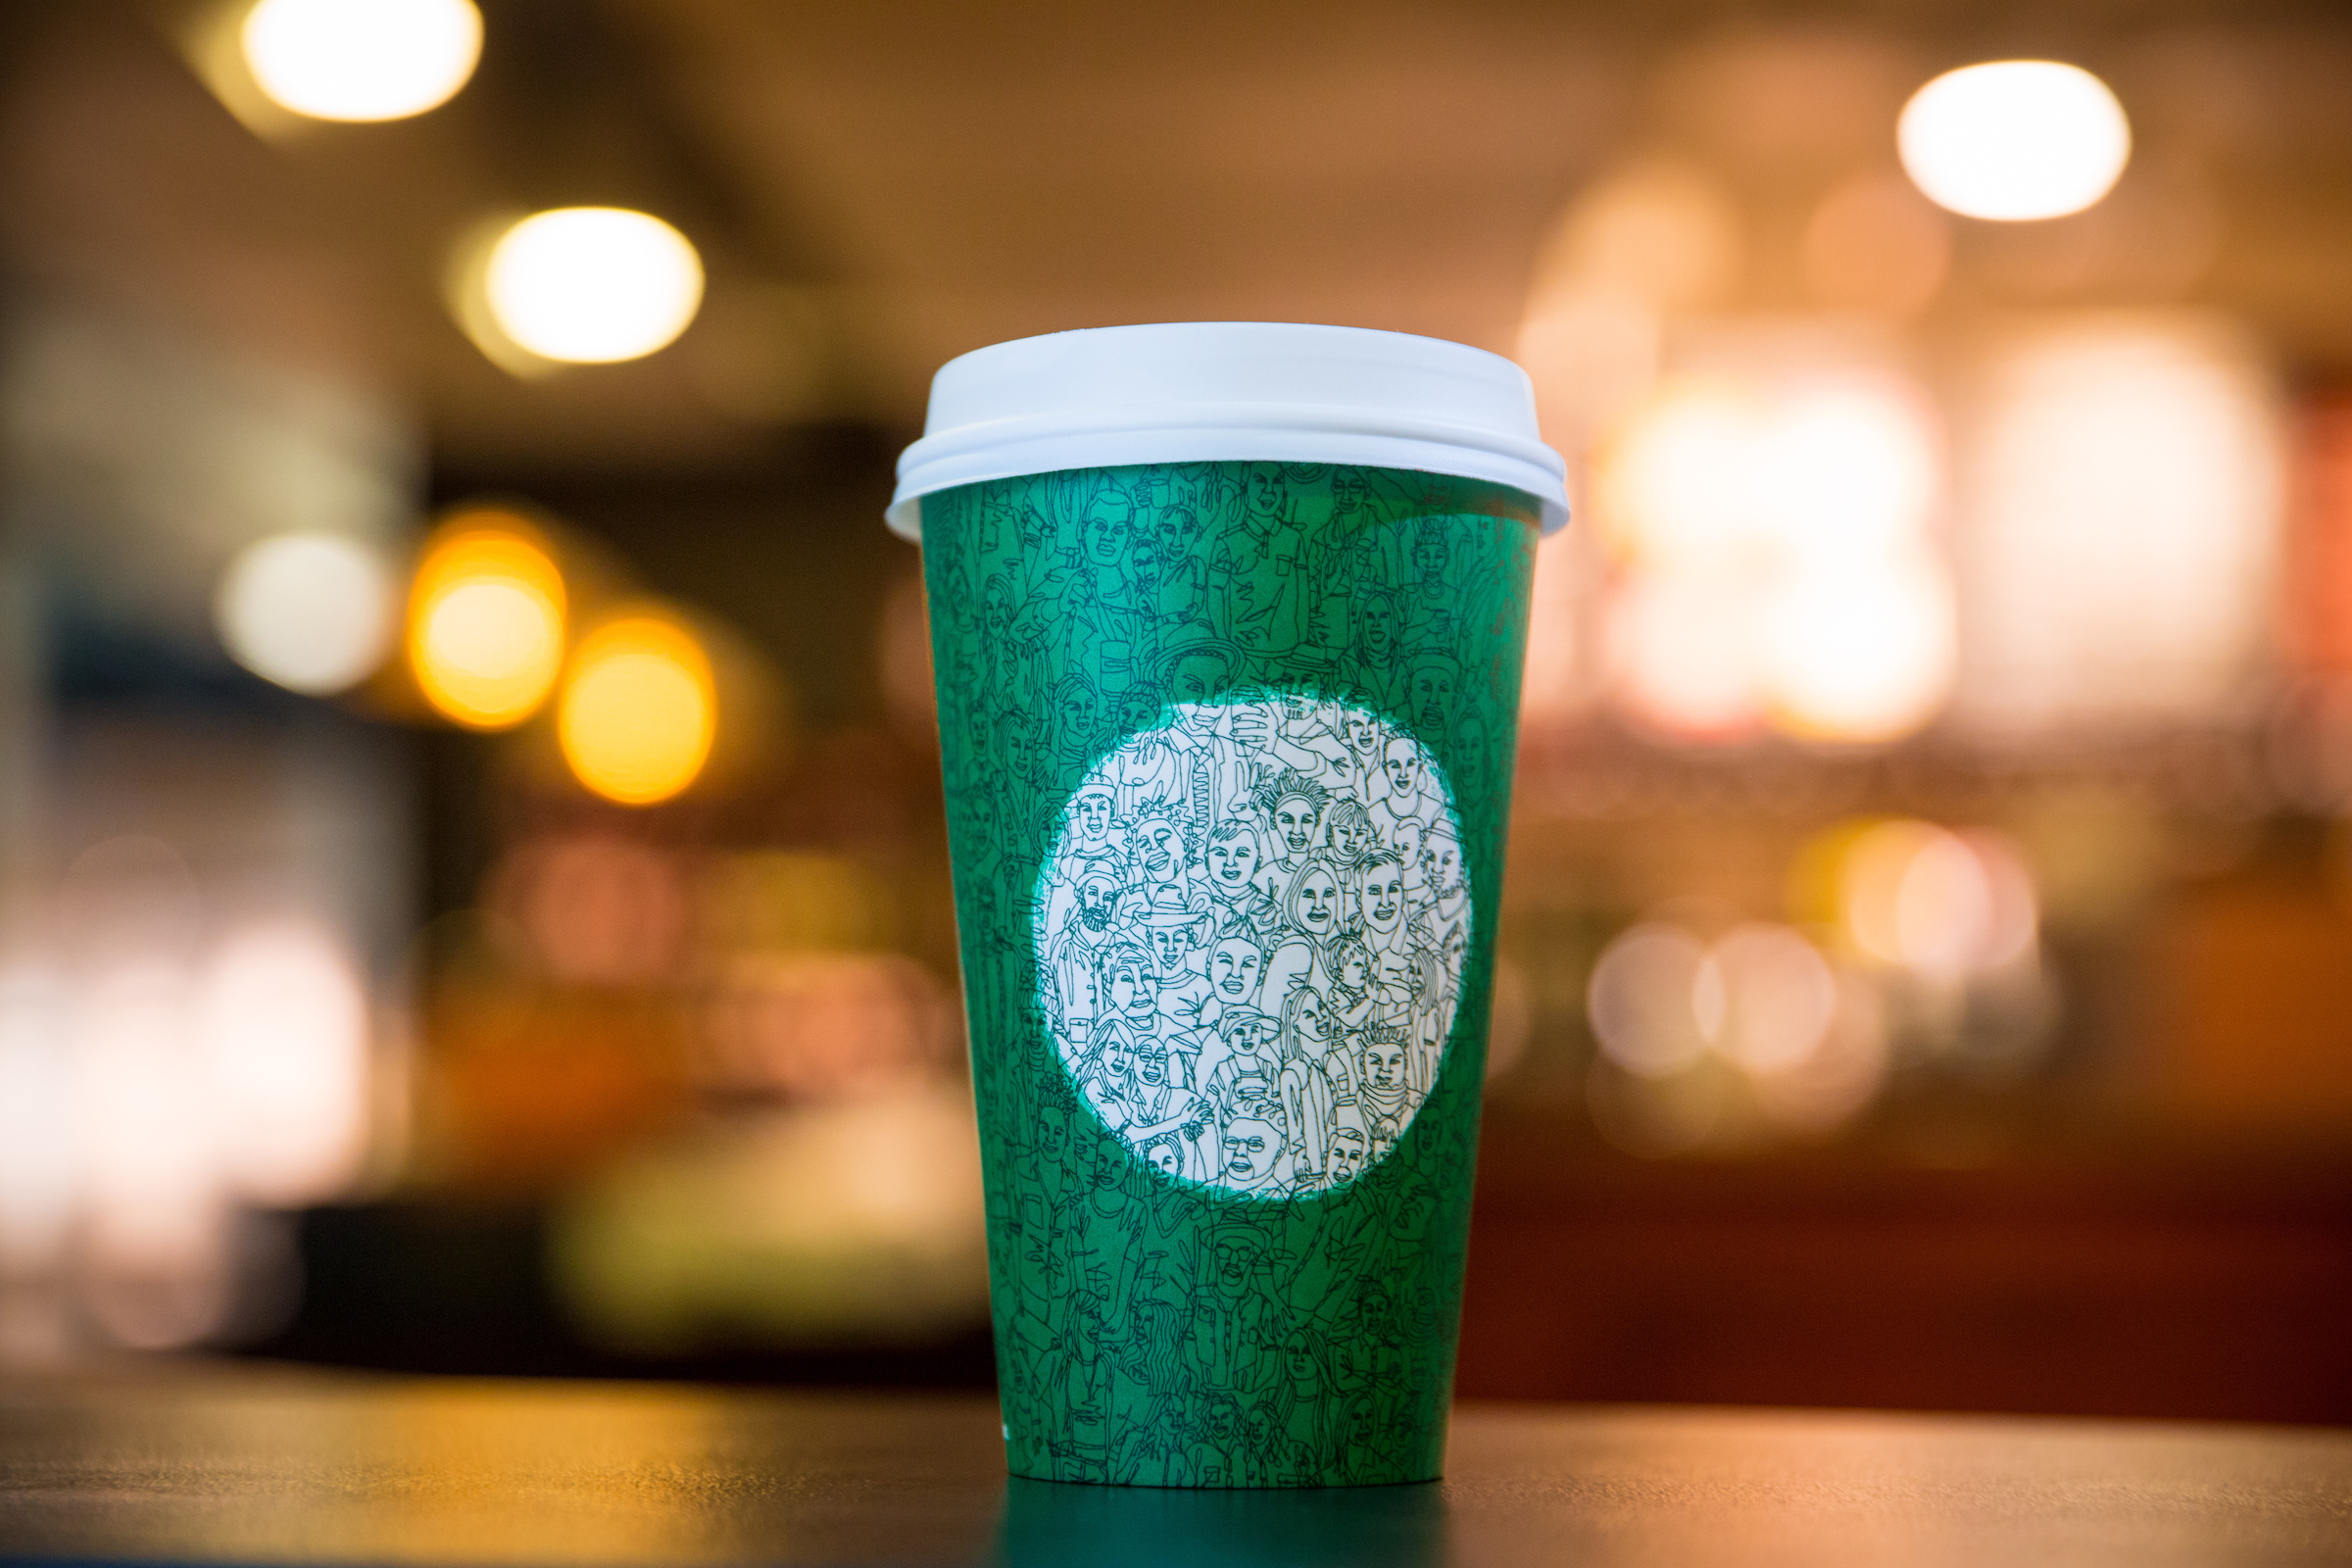 starbucks to hire refugees after immigration ban tr starbucks cup photographed on 26 2016 joshua trujillo starbucks